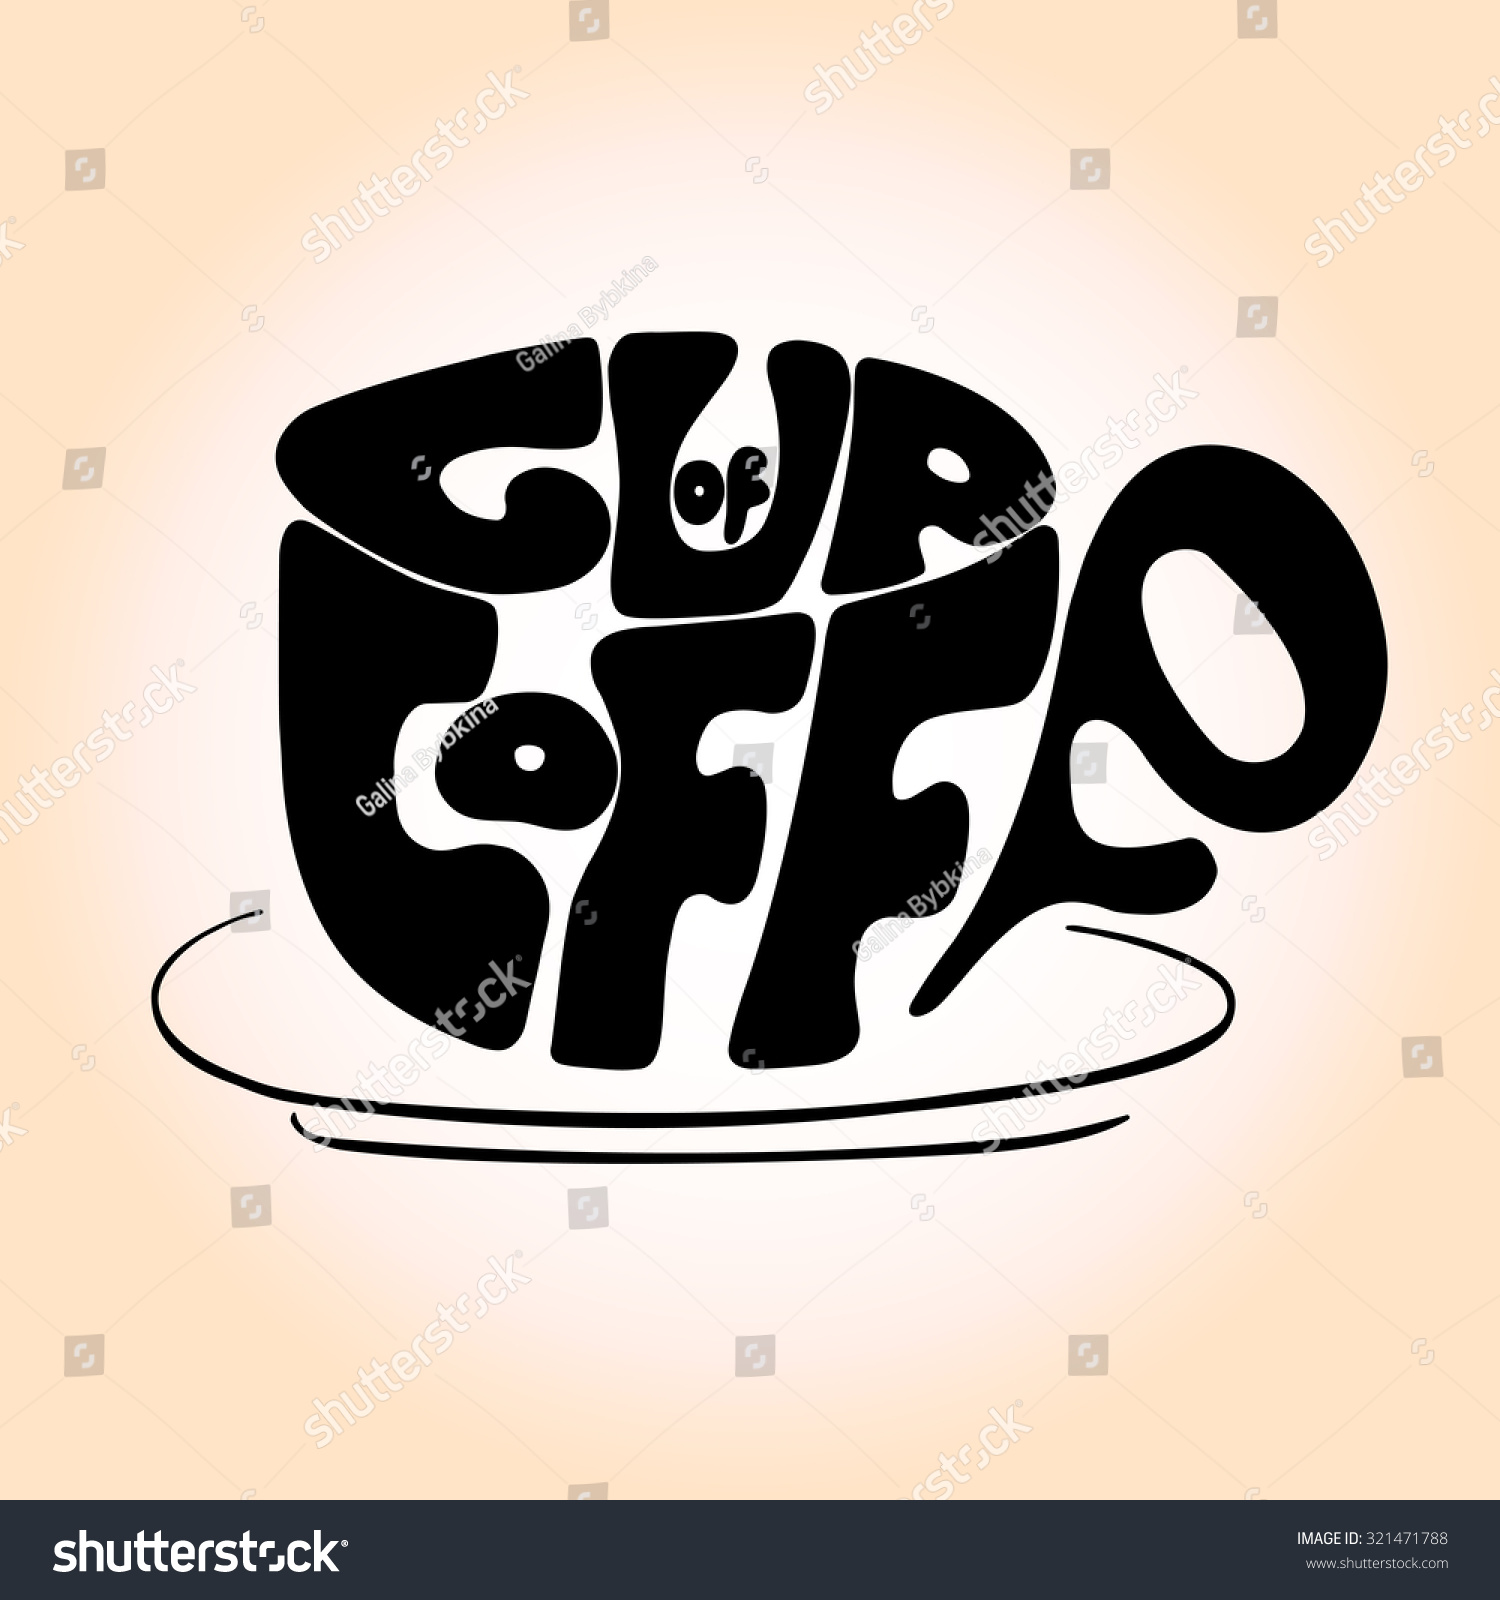 Poster design maker - Hand Drawn Typography Poster Design With Coffee Maker Silhouette And Phrase In It Cup